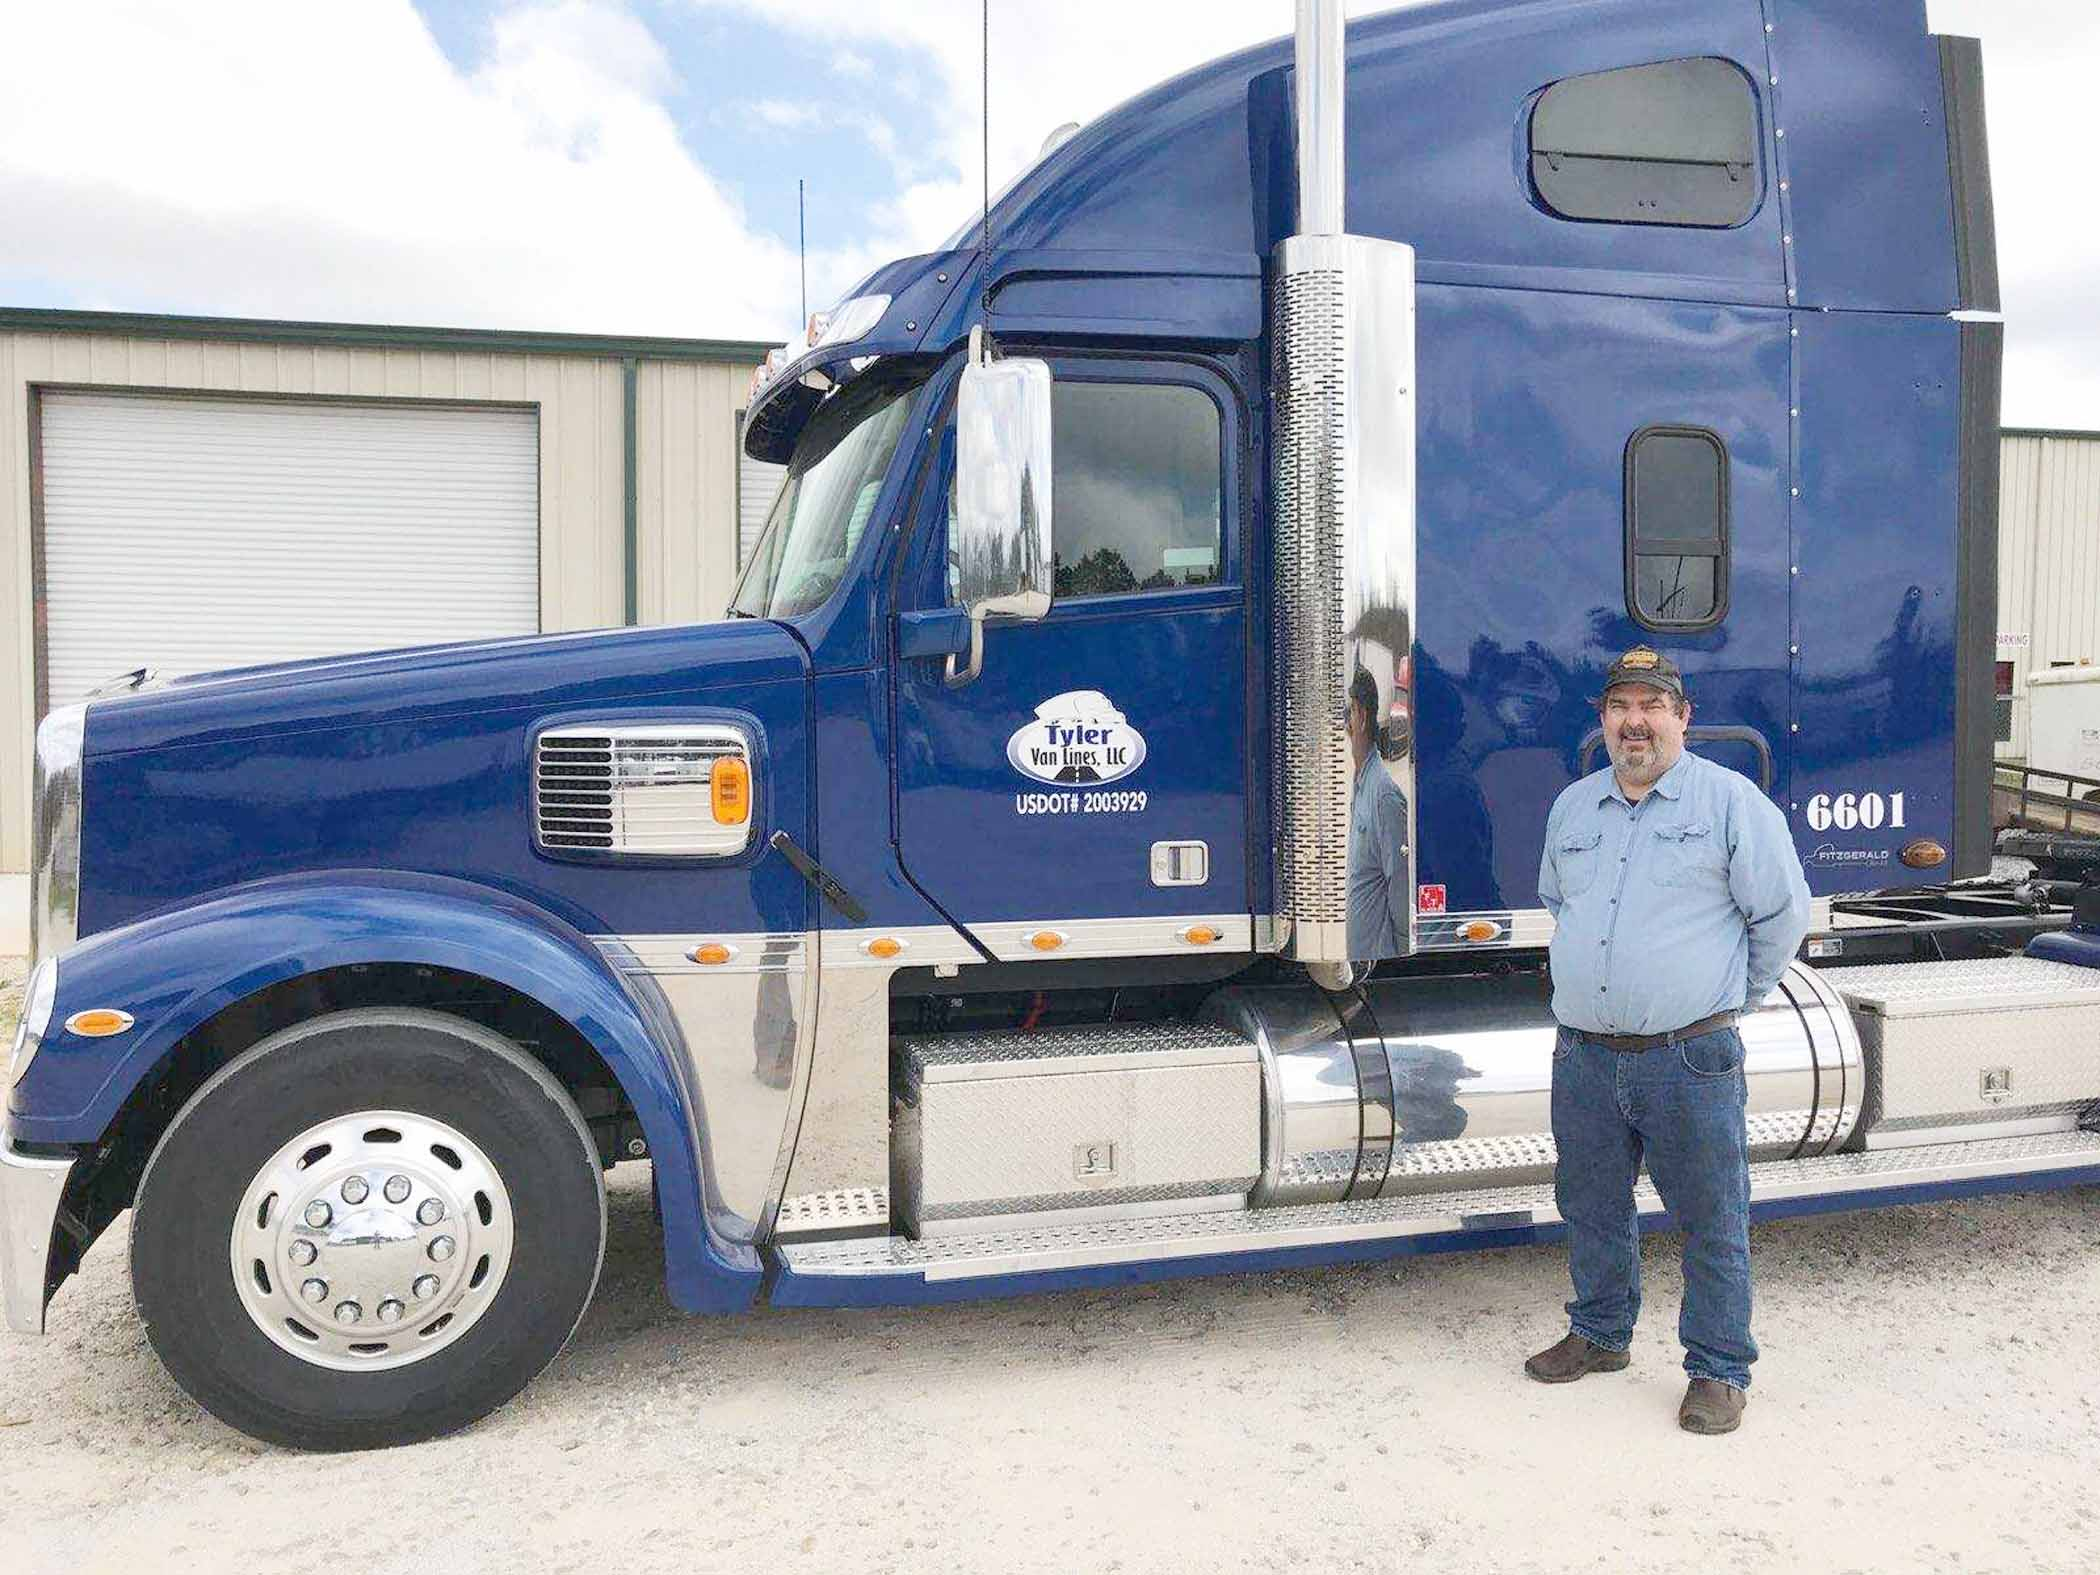 best in tow bill wood named tyler transport driver of the year the troy messenger the troy messenger bill wood named tyler transport driver